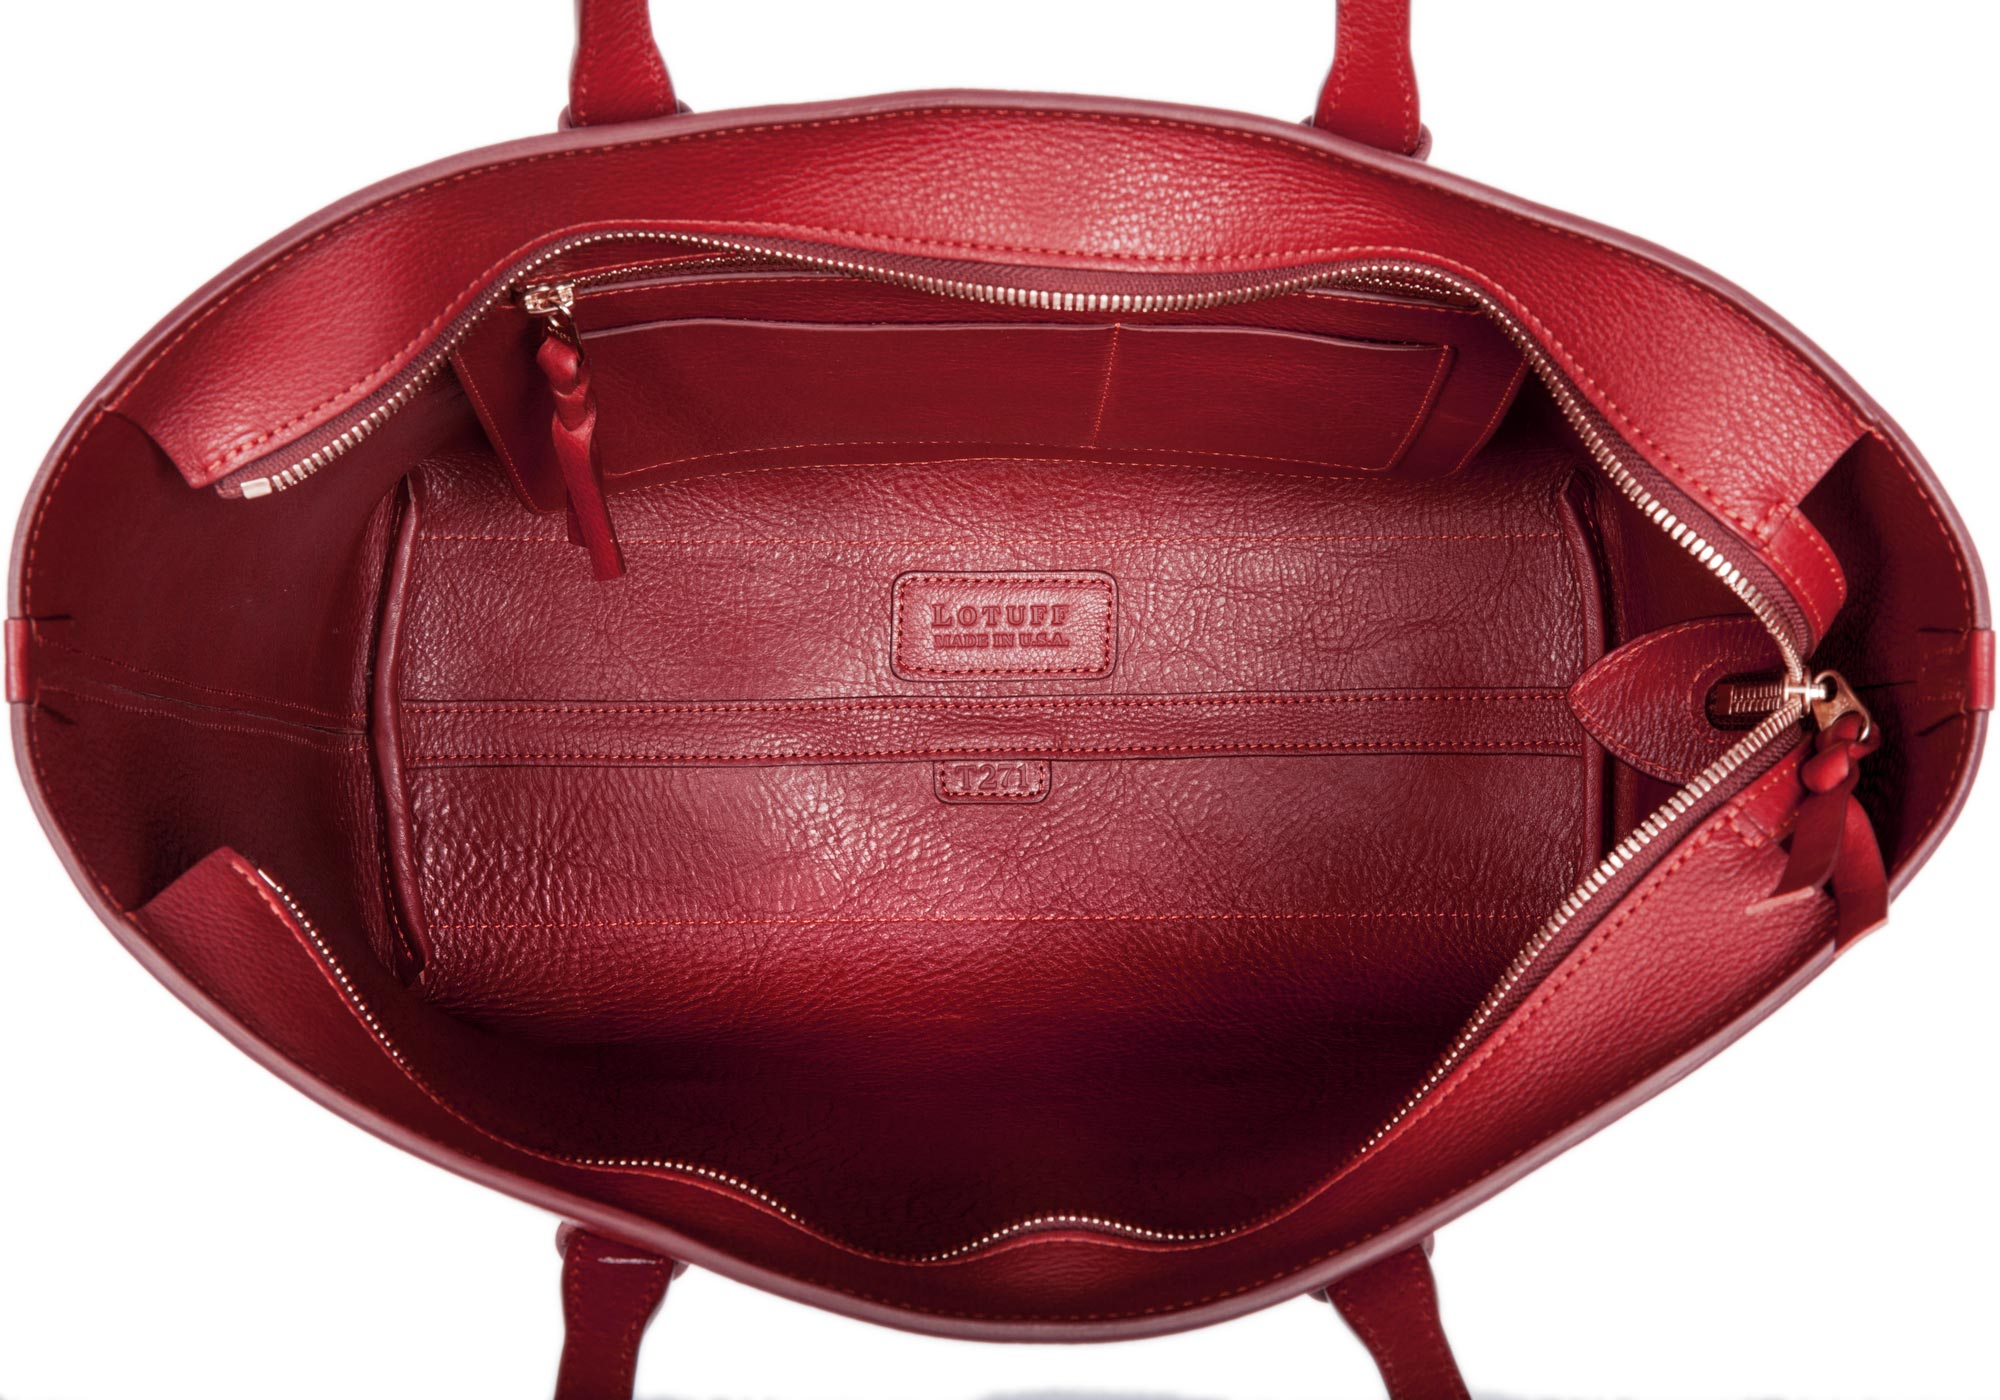 No. 12 Leather Tote Red